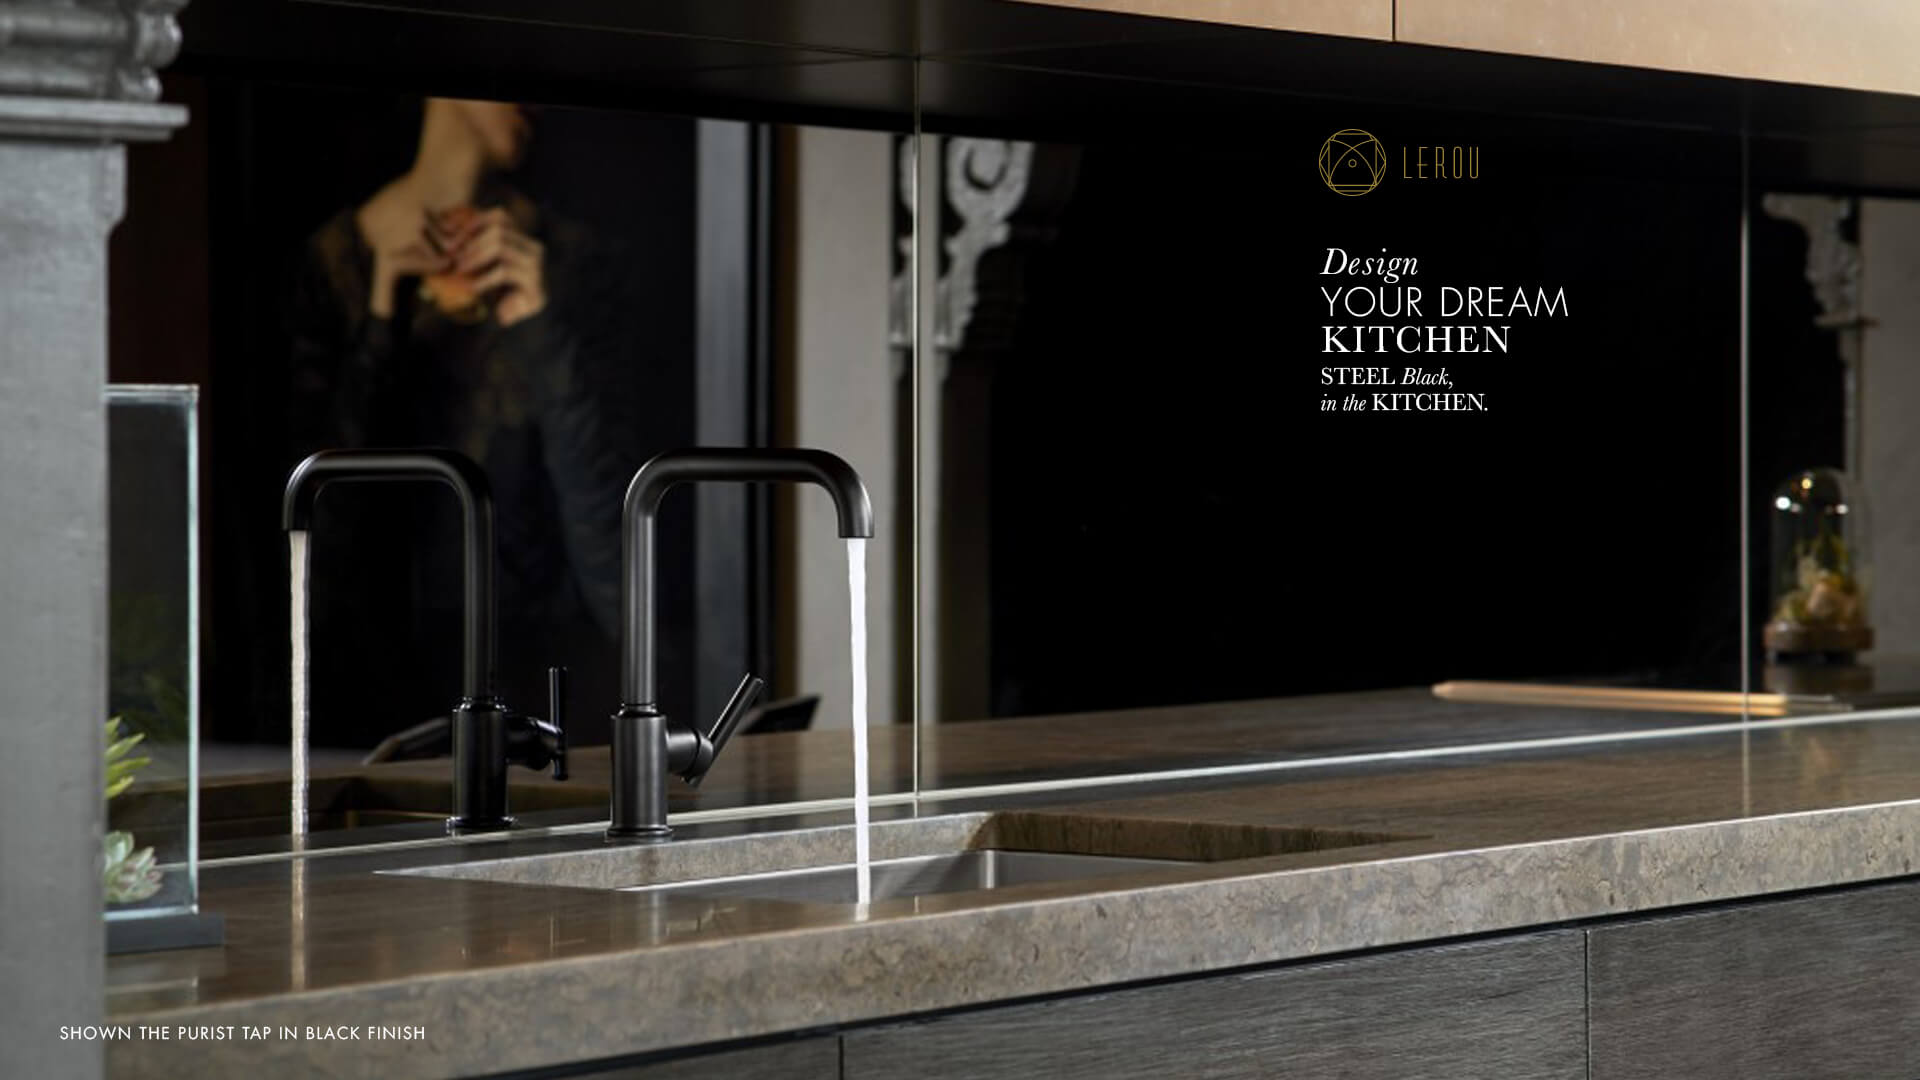 Design Your Dream Kitchen: Steel Black in the Kitchen. Ontwerp uw droomkeuken: Steel Black in de keuken.